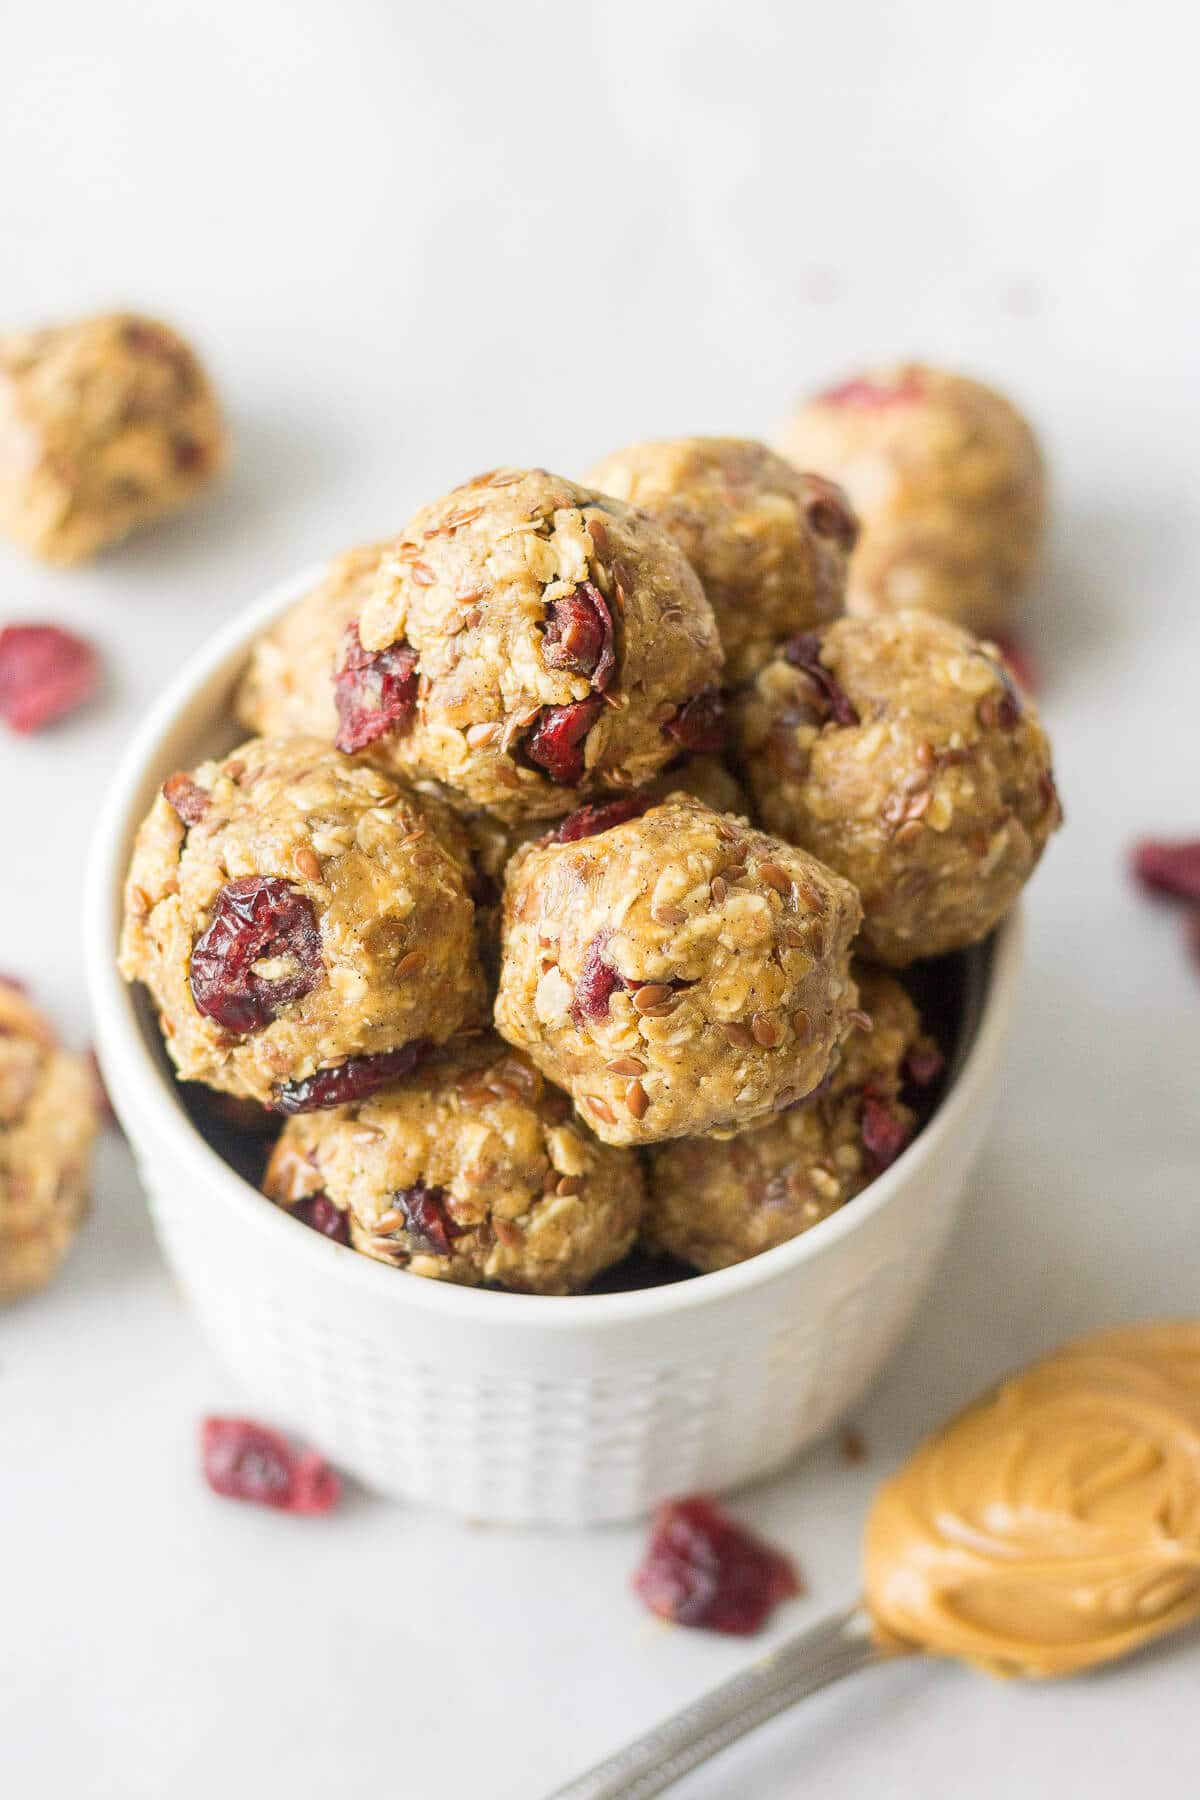 These PB & J Protein Balls are going to be your new favorite bite-sized snack! They're made with all healthy ingredients and packed with protein for a filling snack on-the-go.